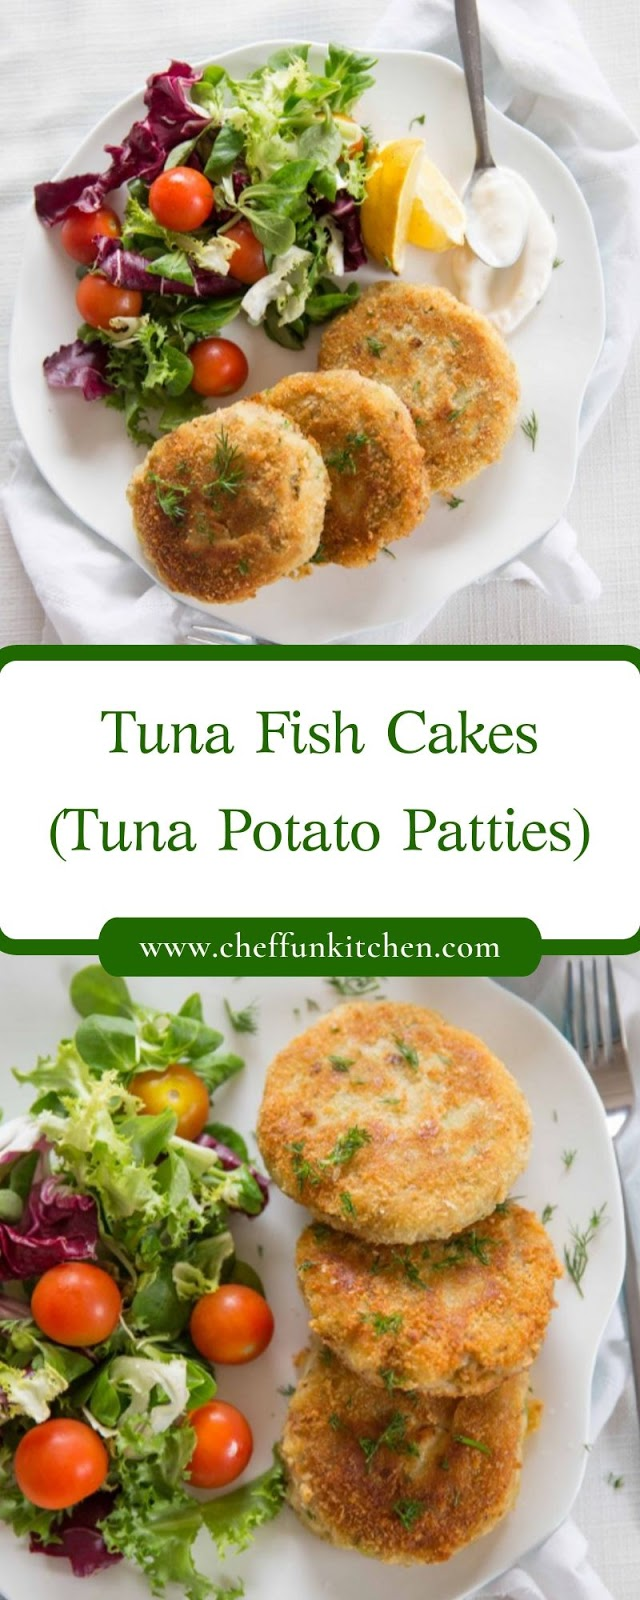 Tuna Fish Cakes (Tuna Potato Patties)